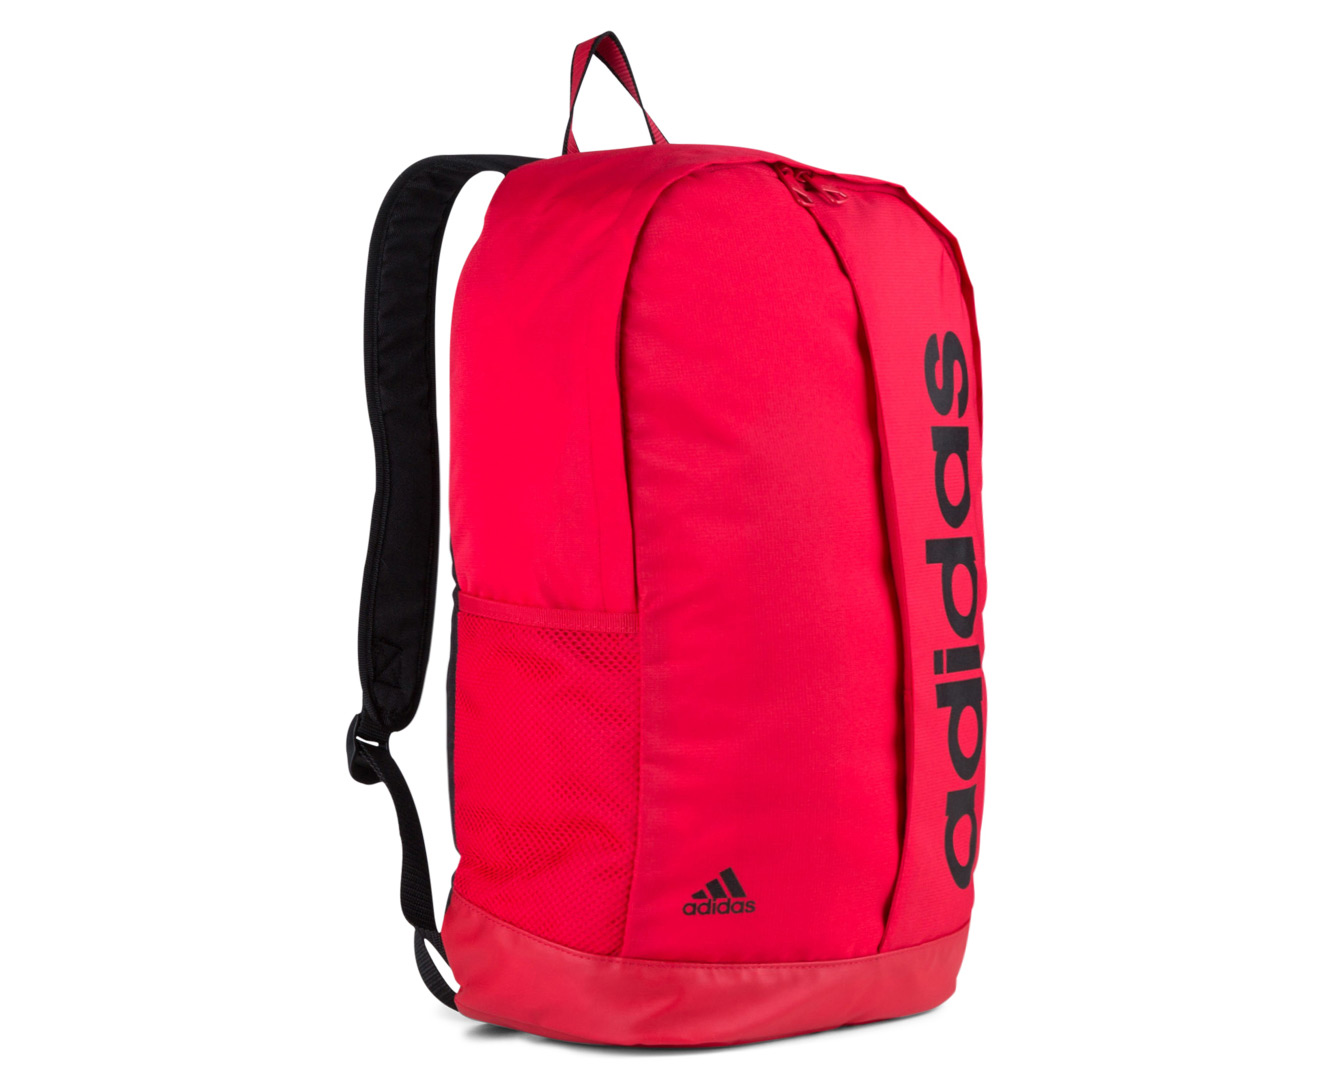 d0c26ed4717b Adidas Linear Performance Backpack - Ray Red Black